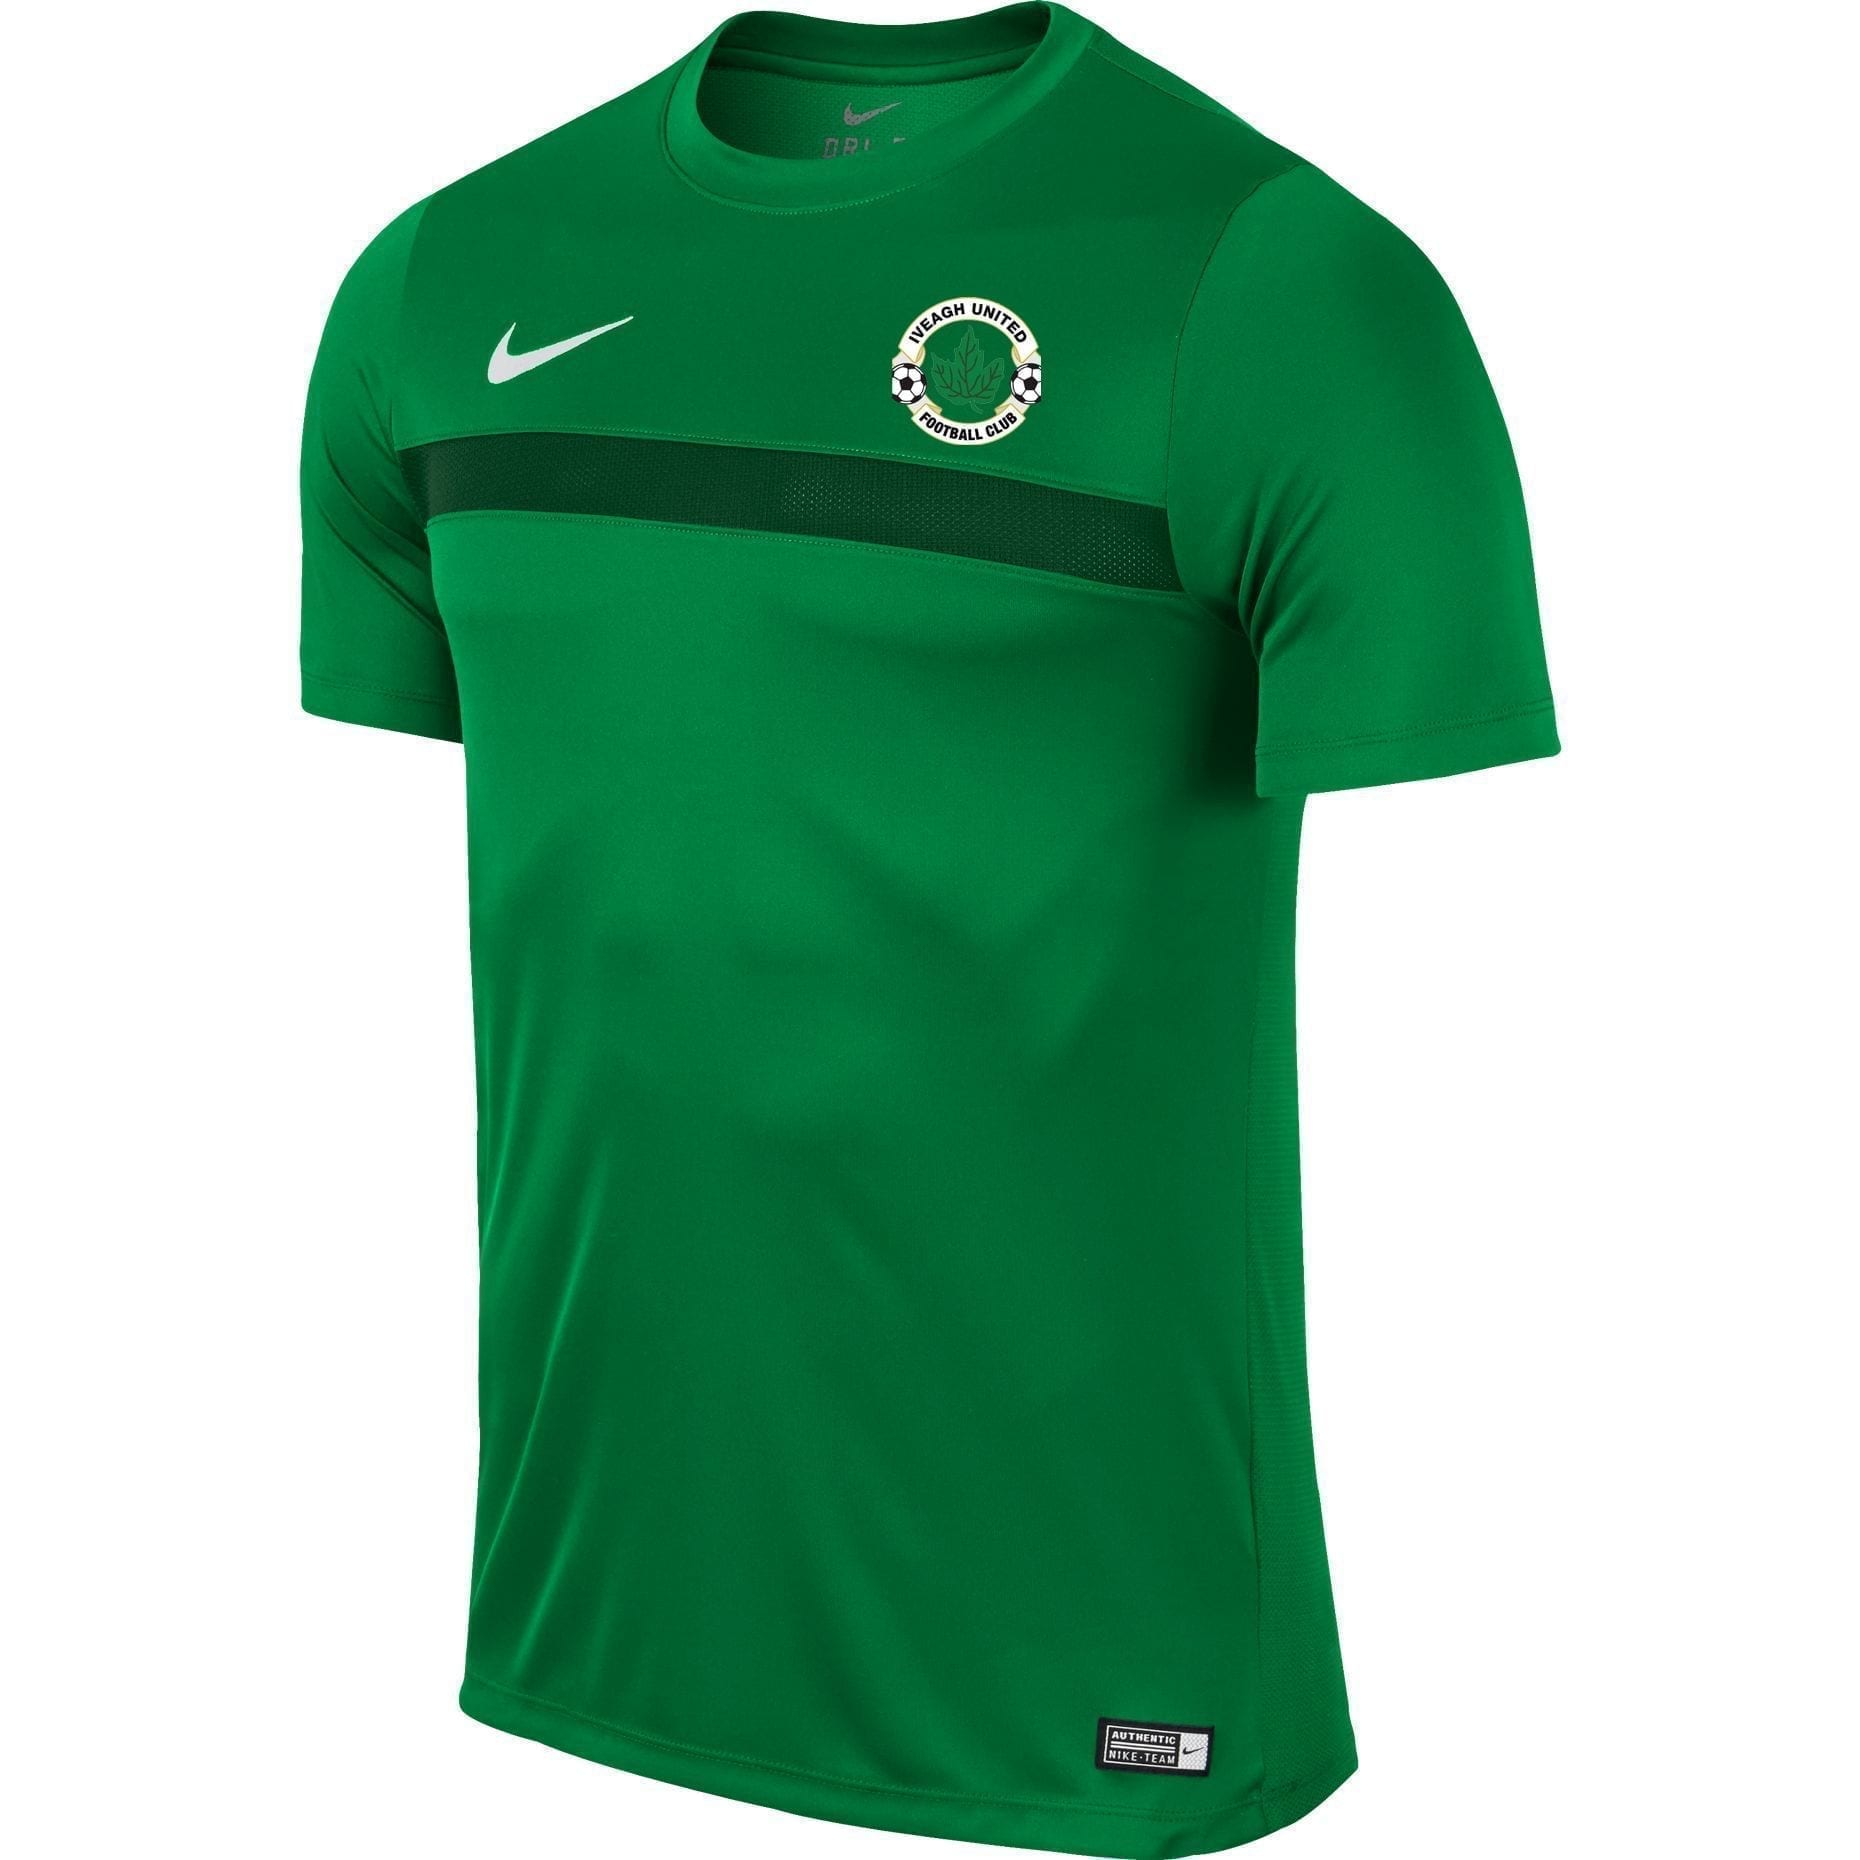 iveagh utd training kit 28121 p